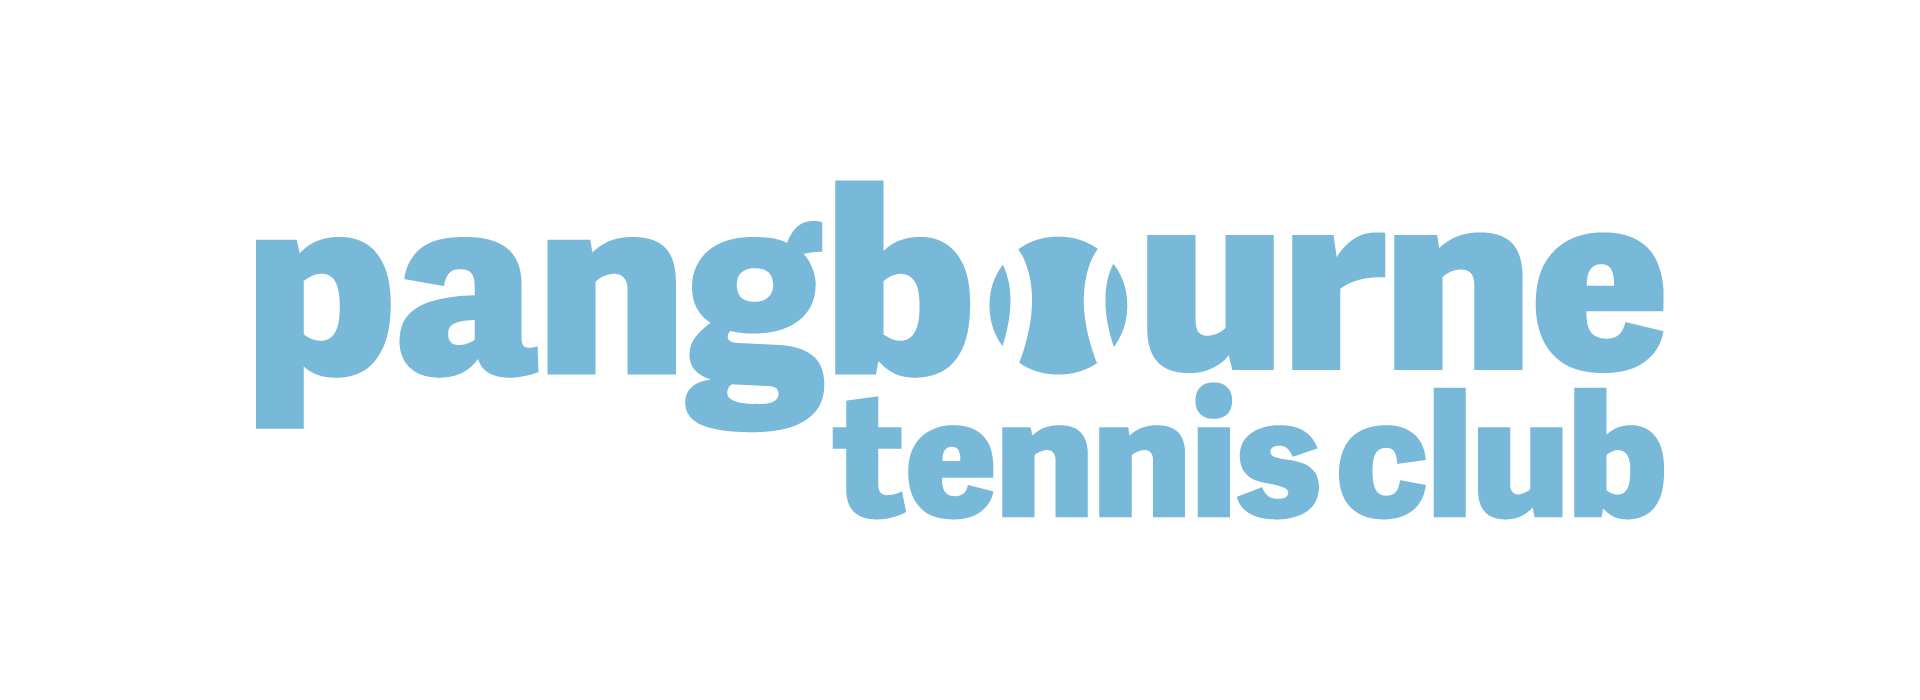 Pangbourne Tennis Club